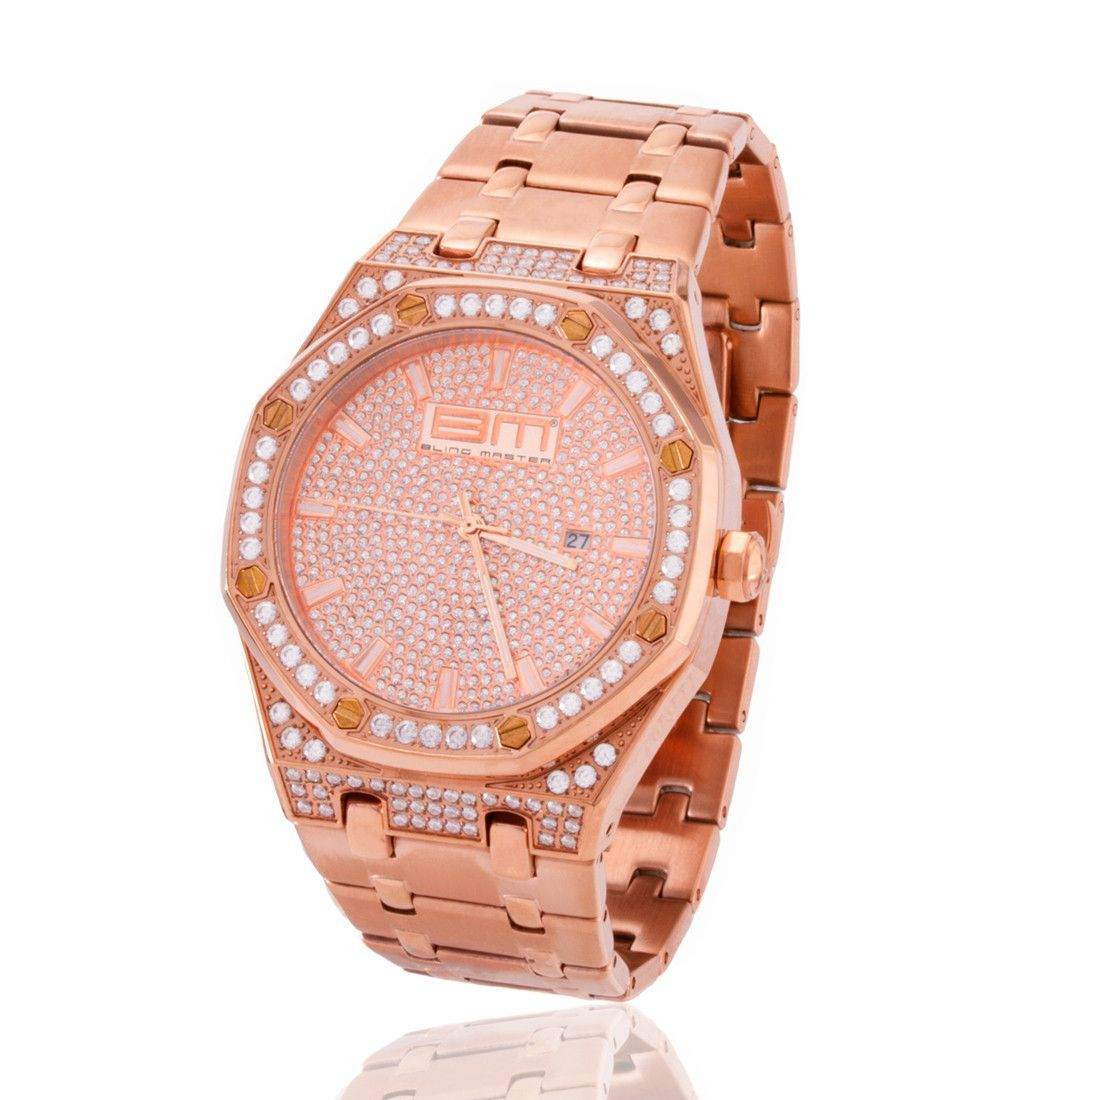 The Rose Gold Exec Watch